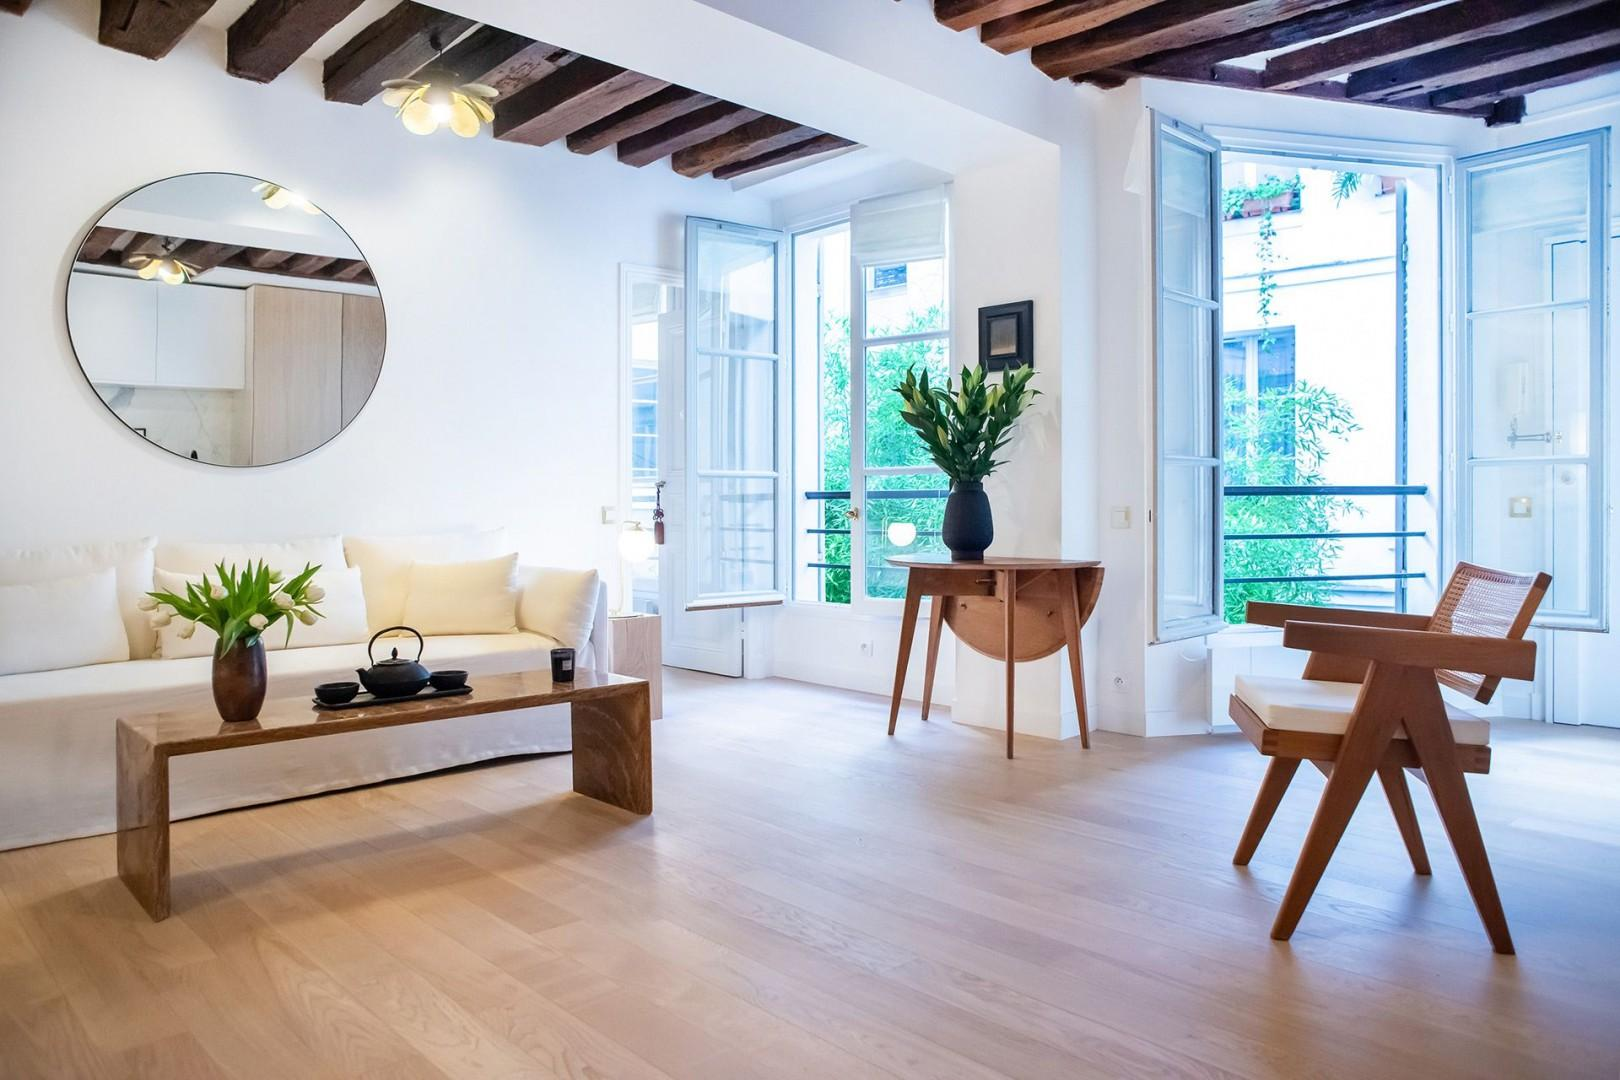 The bright and spacious living room has large French windows and high-end, modern furnishings.